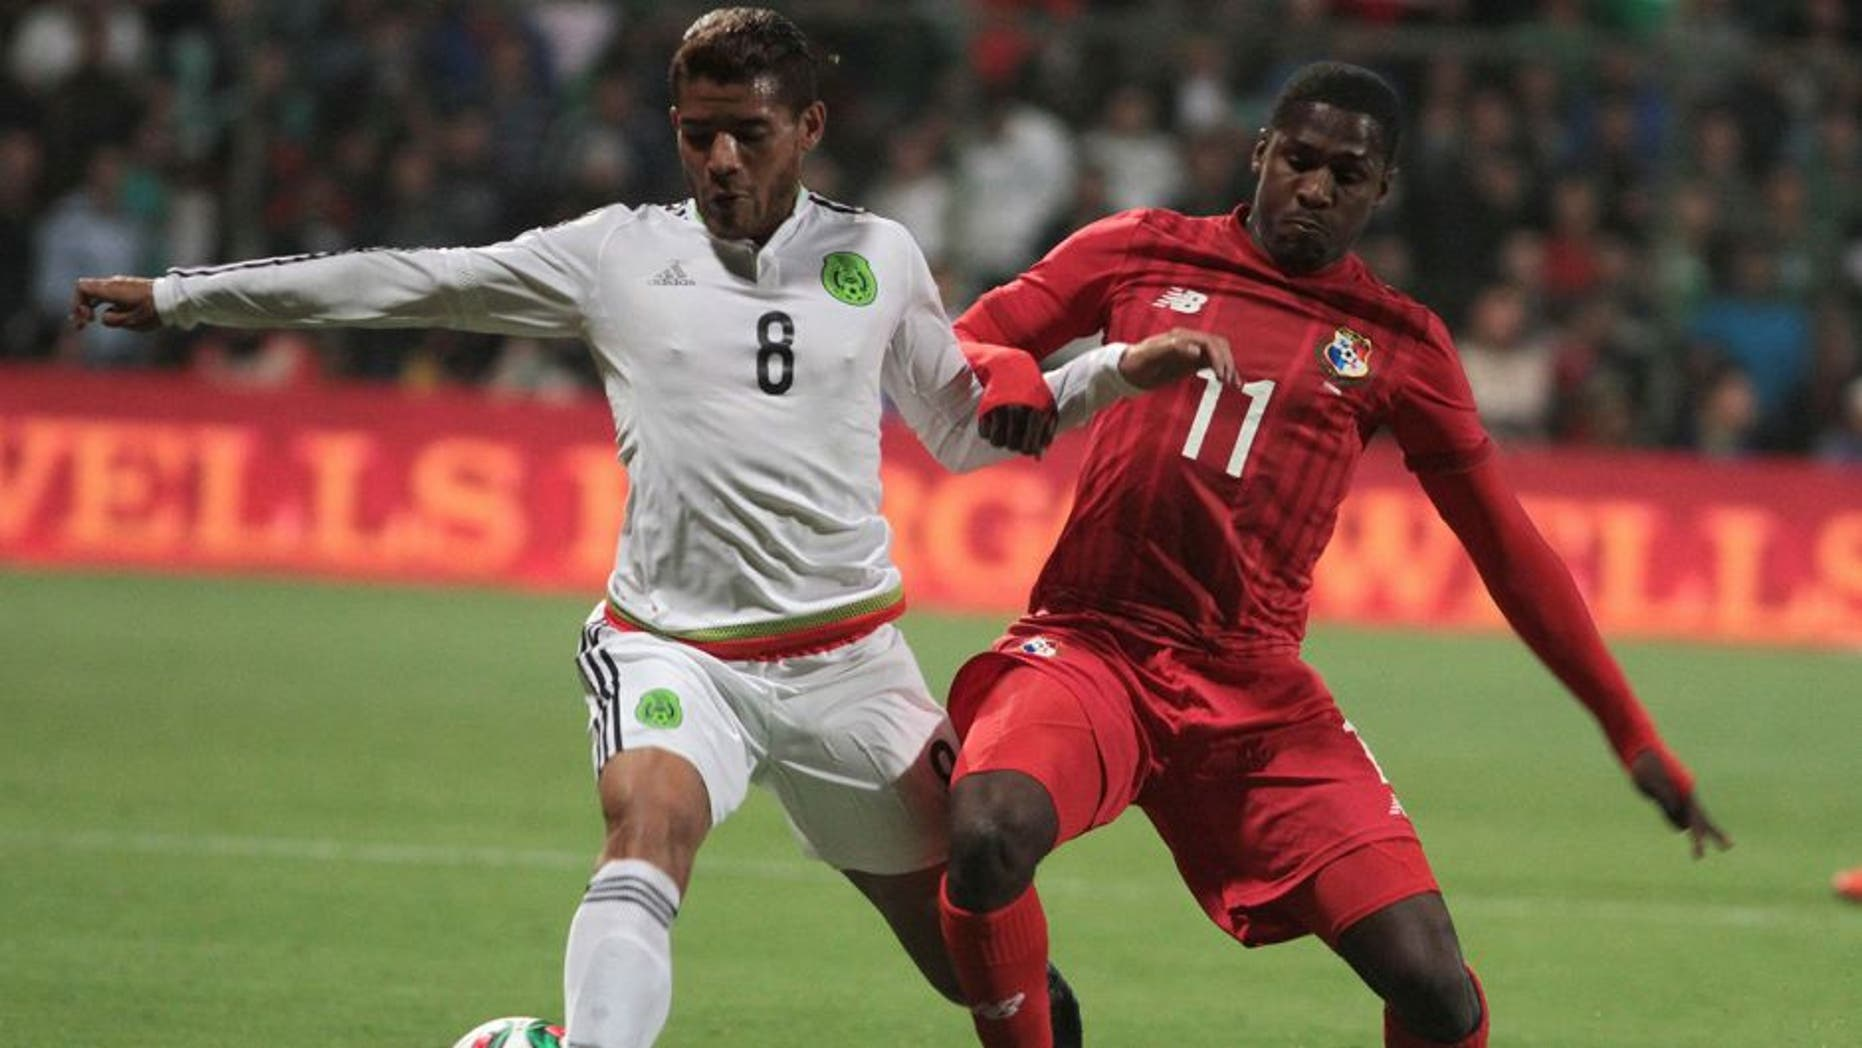 Jonathan Dos Santos (L) of Mexico vies for the ball with Armando Cooper (R) of Panama during their friendly match at the Nemesio Diez stadium on October 13, 2015, in Toluca ,Mexico. AFP PHOTO/MARIA CALLS (Photo credit should read MARIA CALLS/AFP/Getty Images)